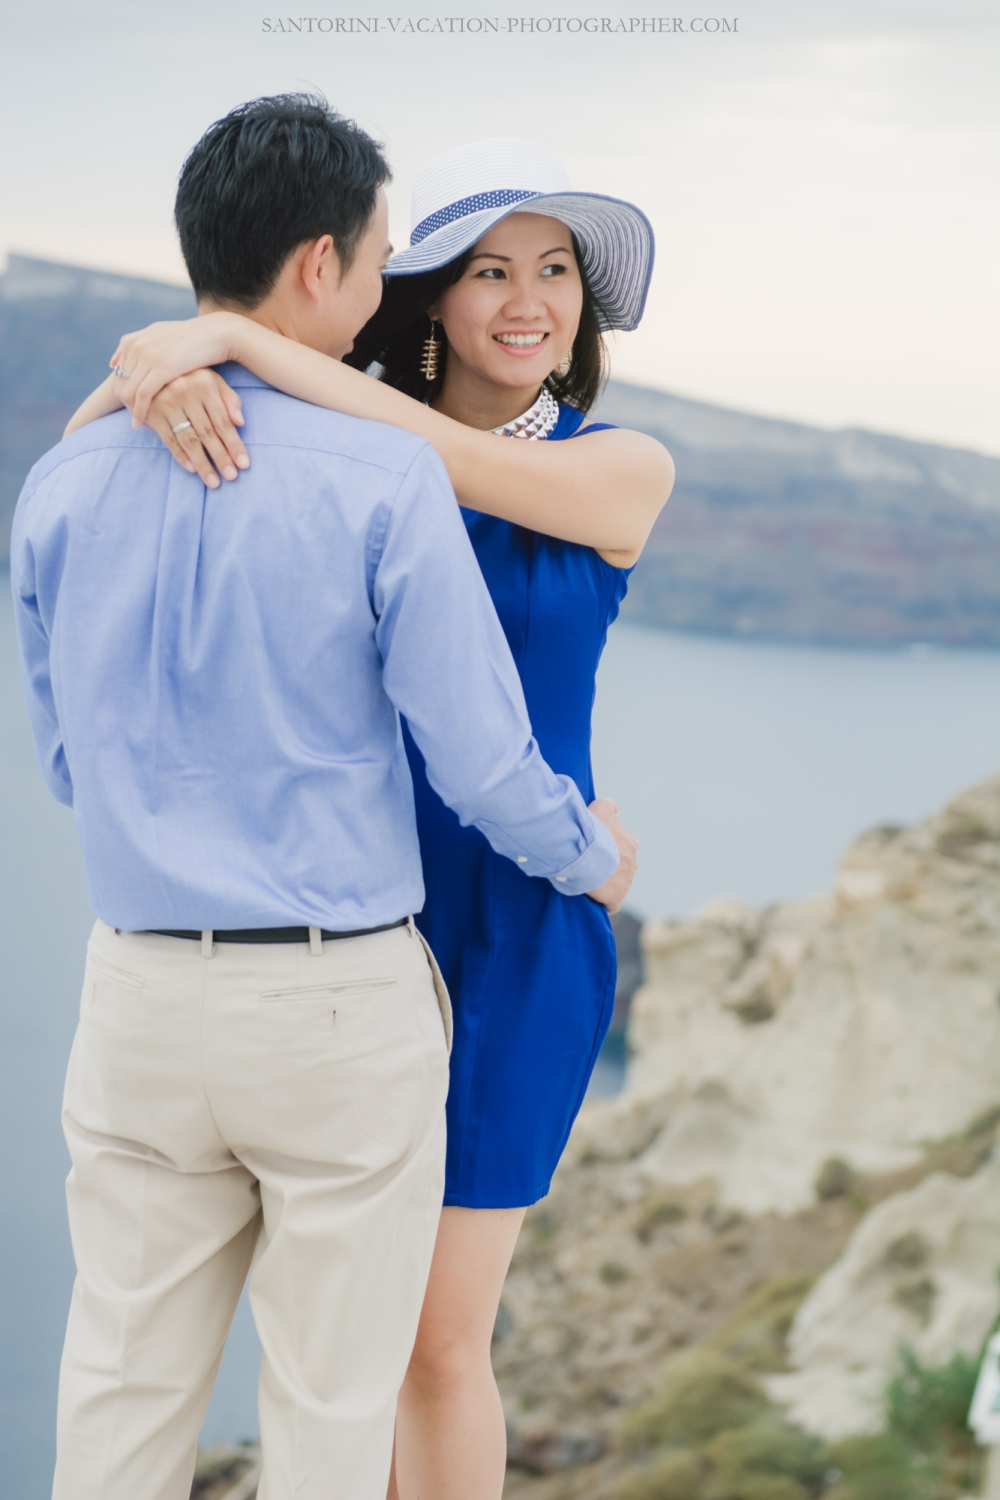 Santorini-couples-photo-session-greece-chrches-Thera-004